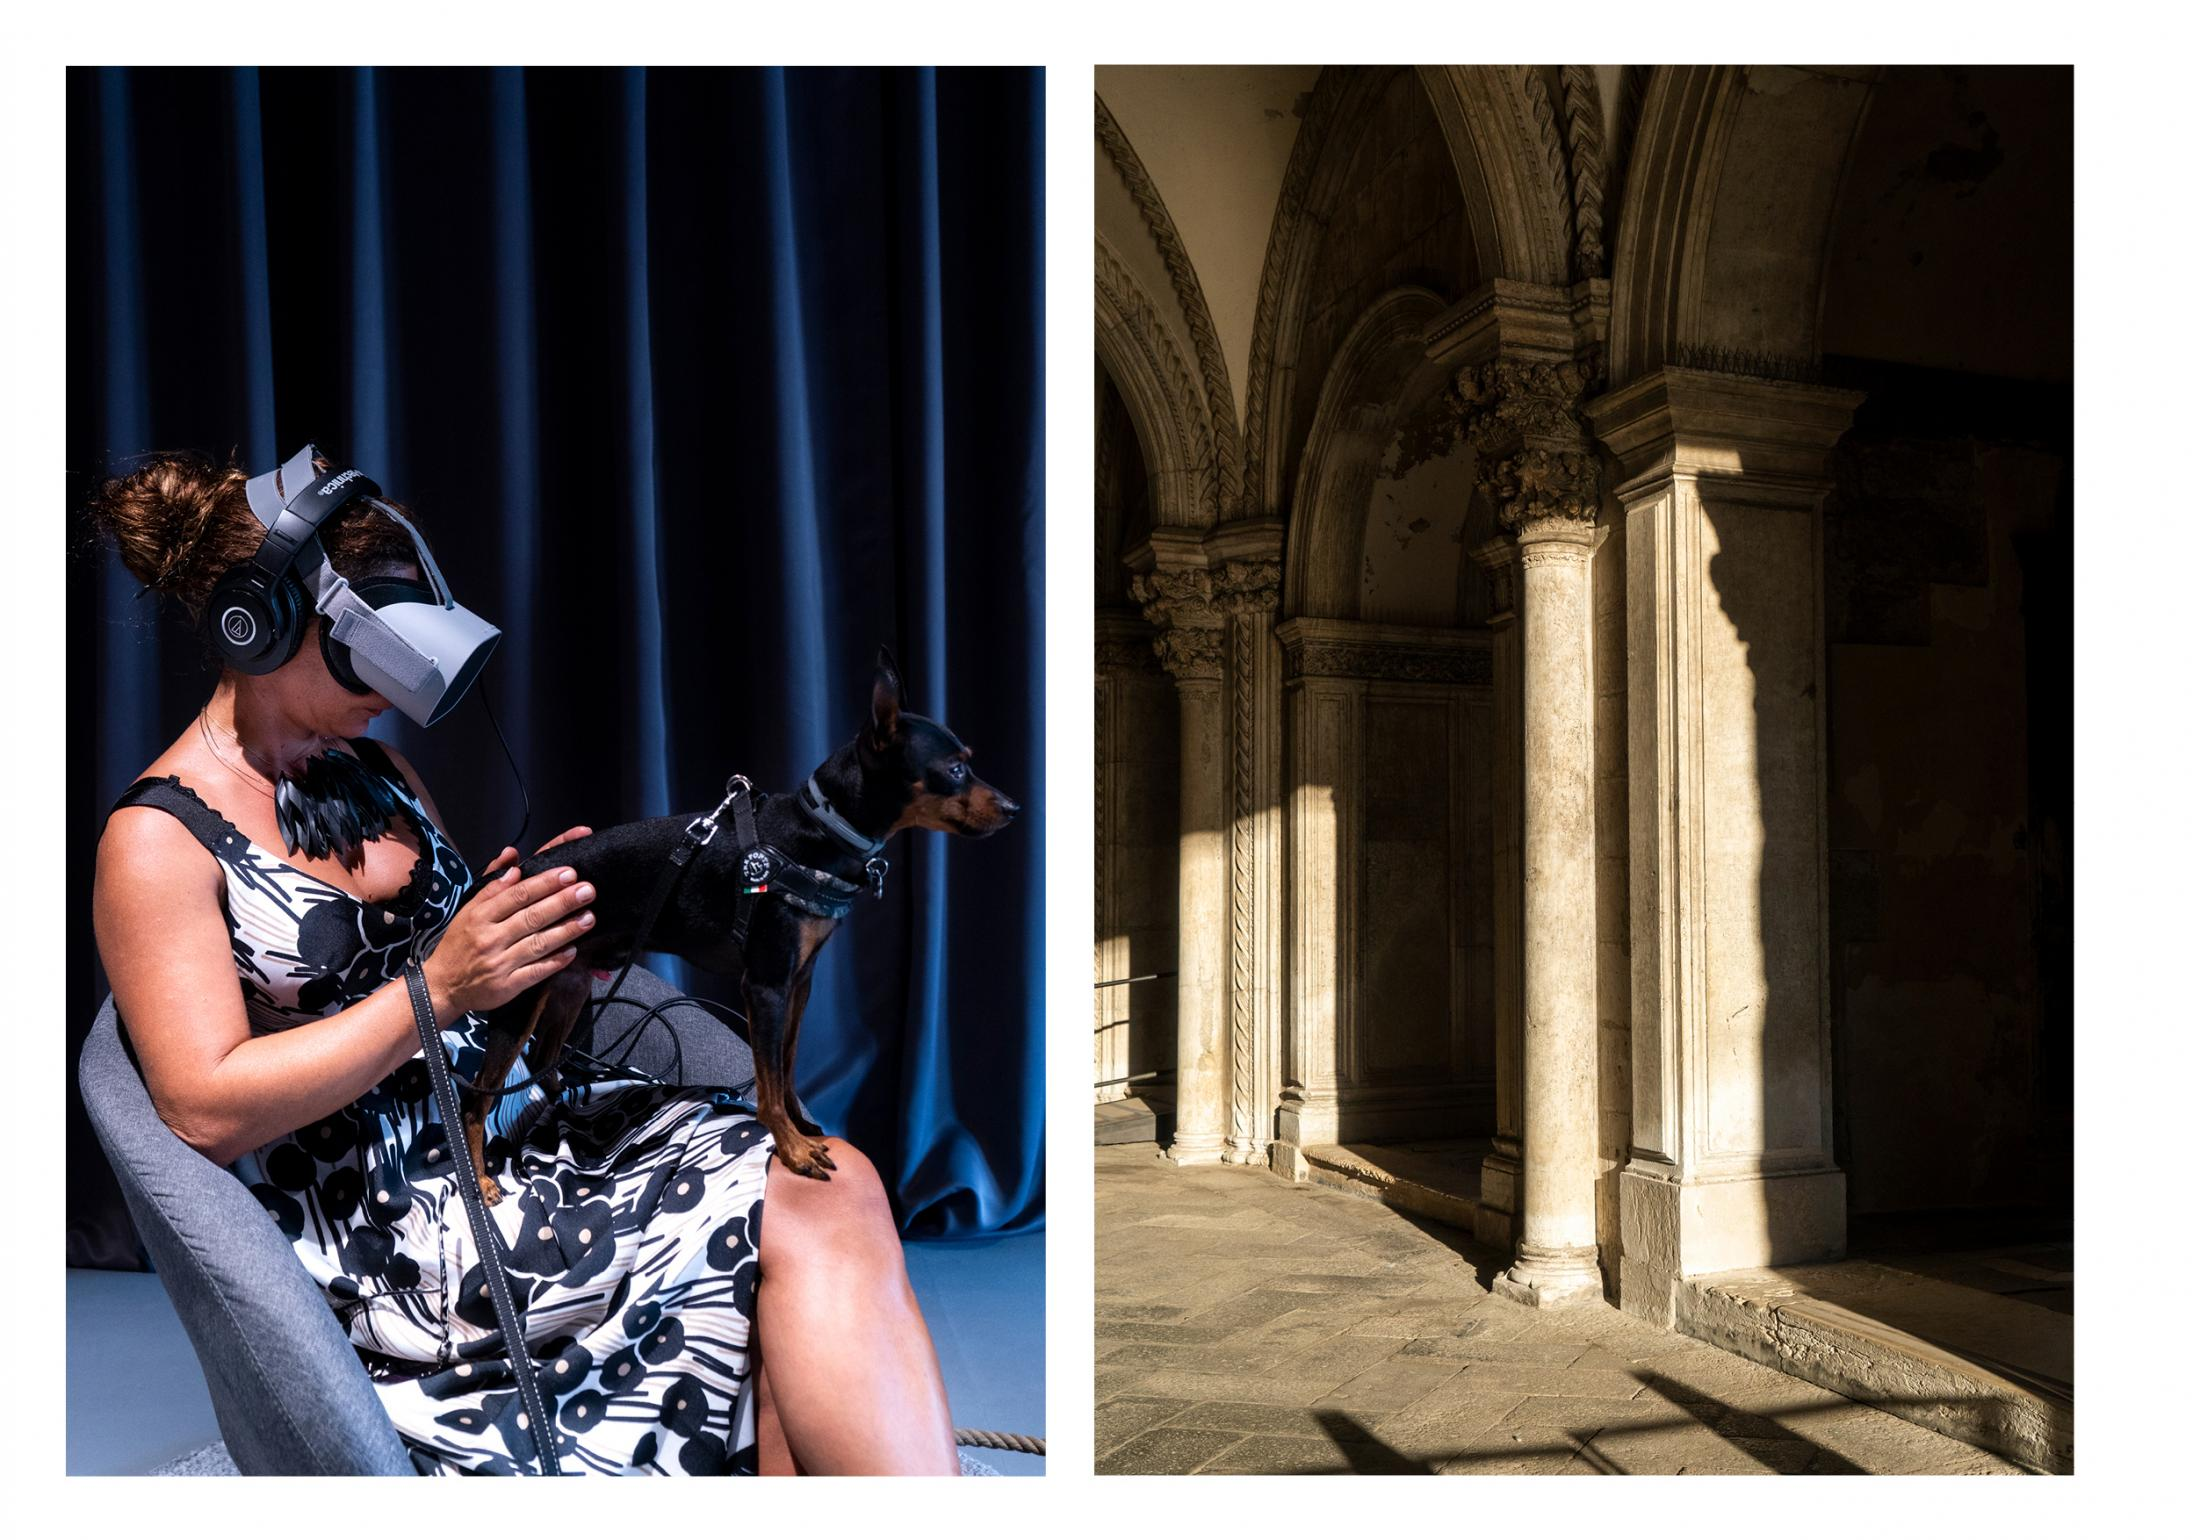 VR installation by Phi Centre during the Biennale Cinema in Venice and a glimpse of the city. Commisioned by Phi Centre (Montreal)